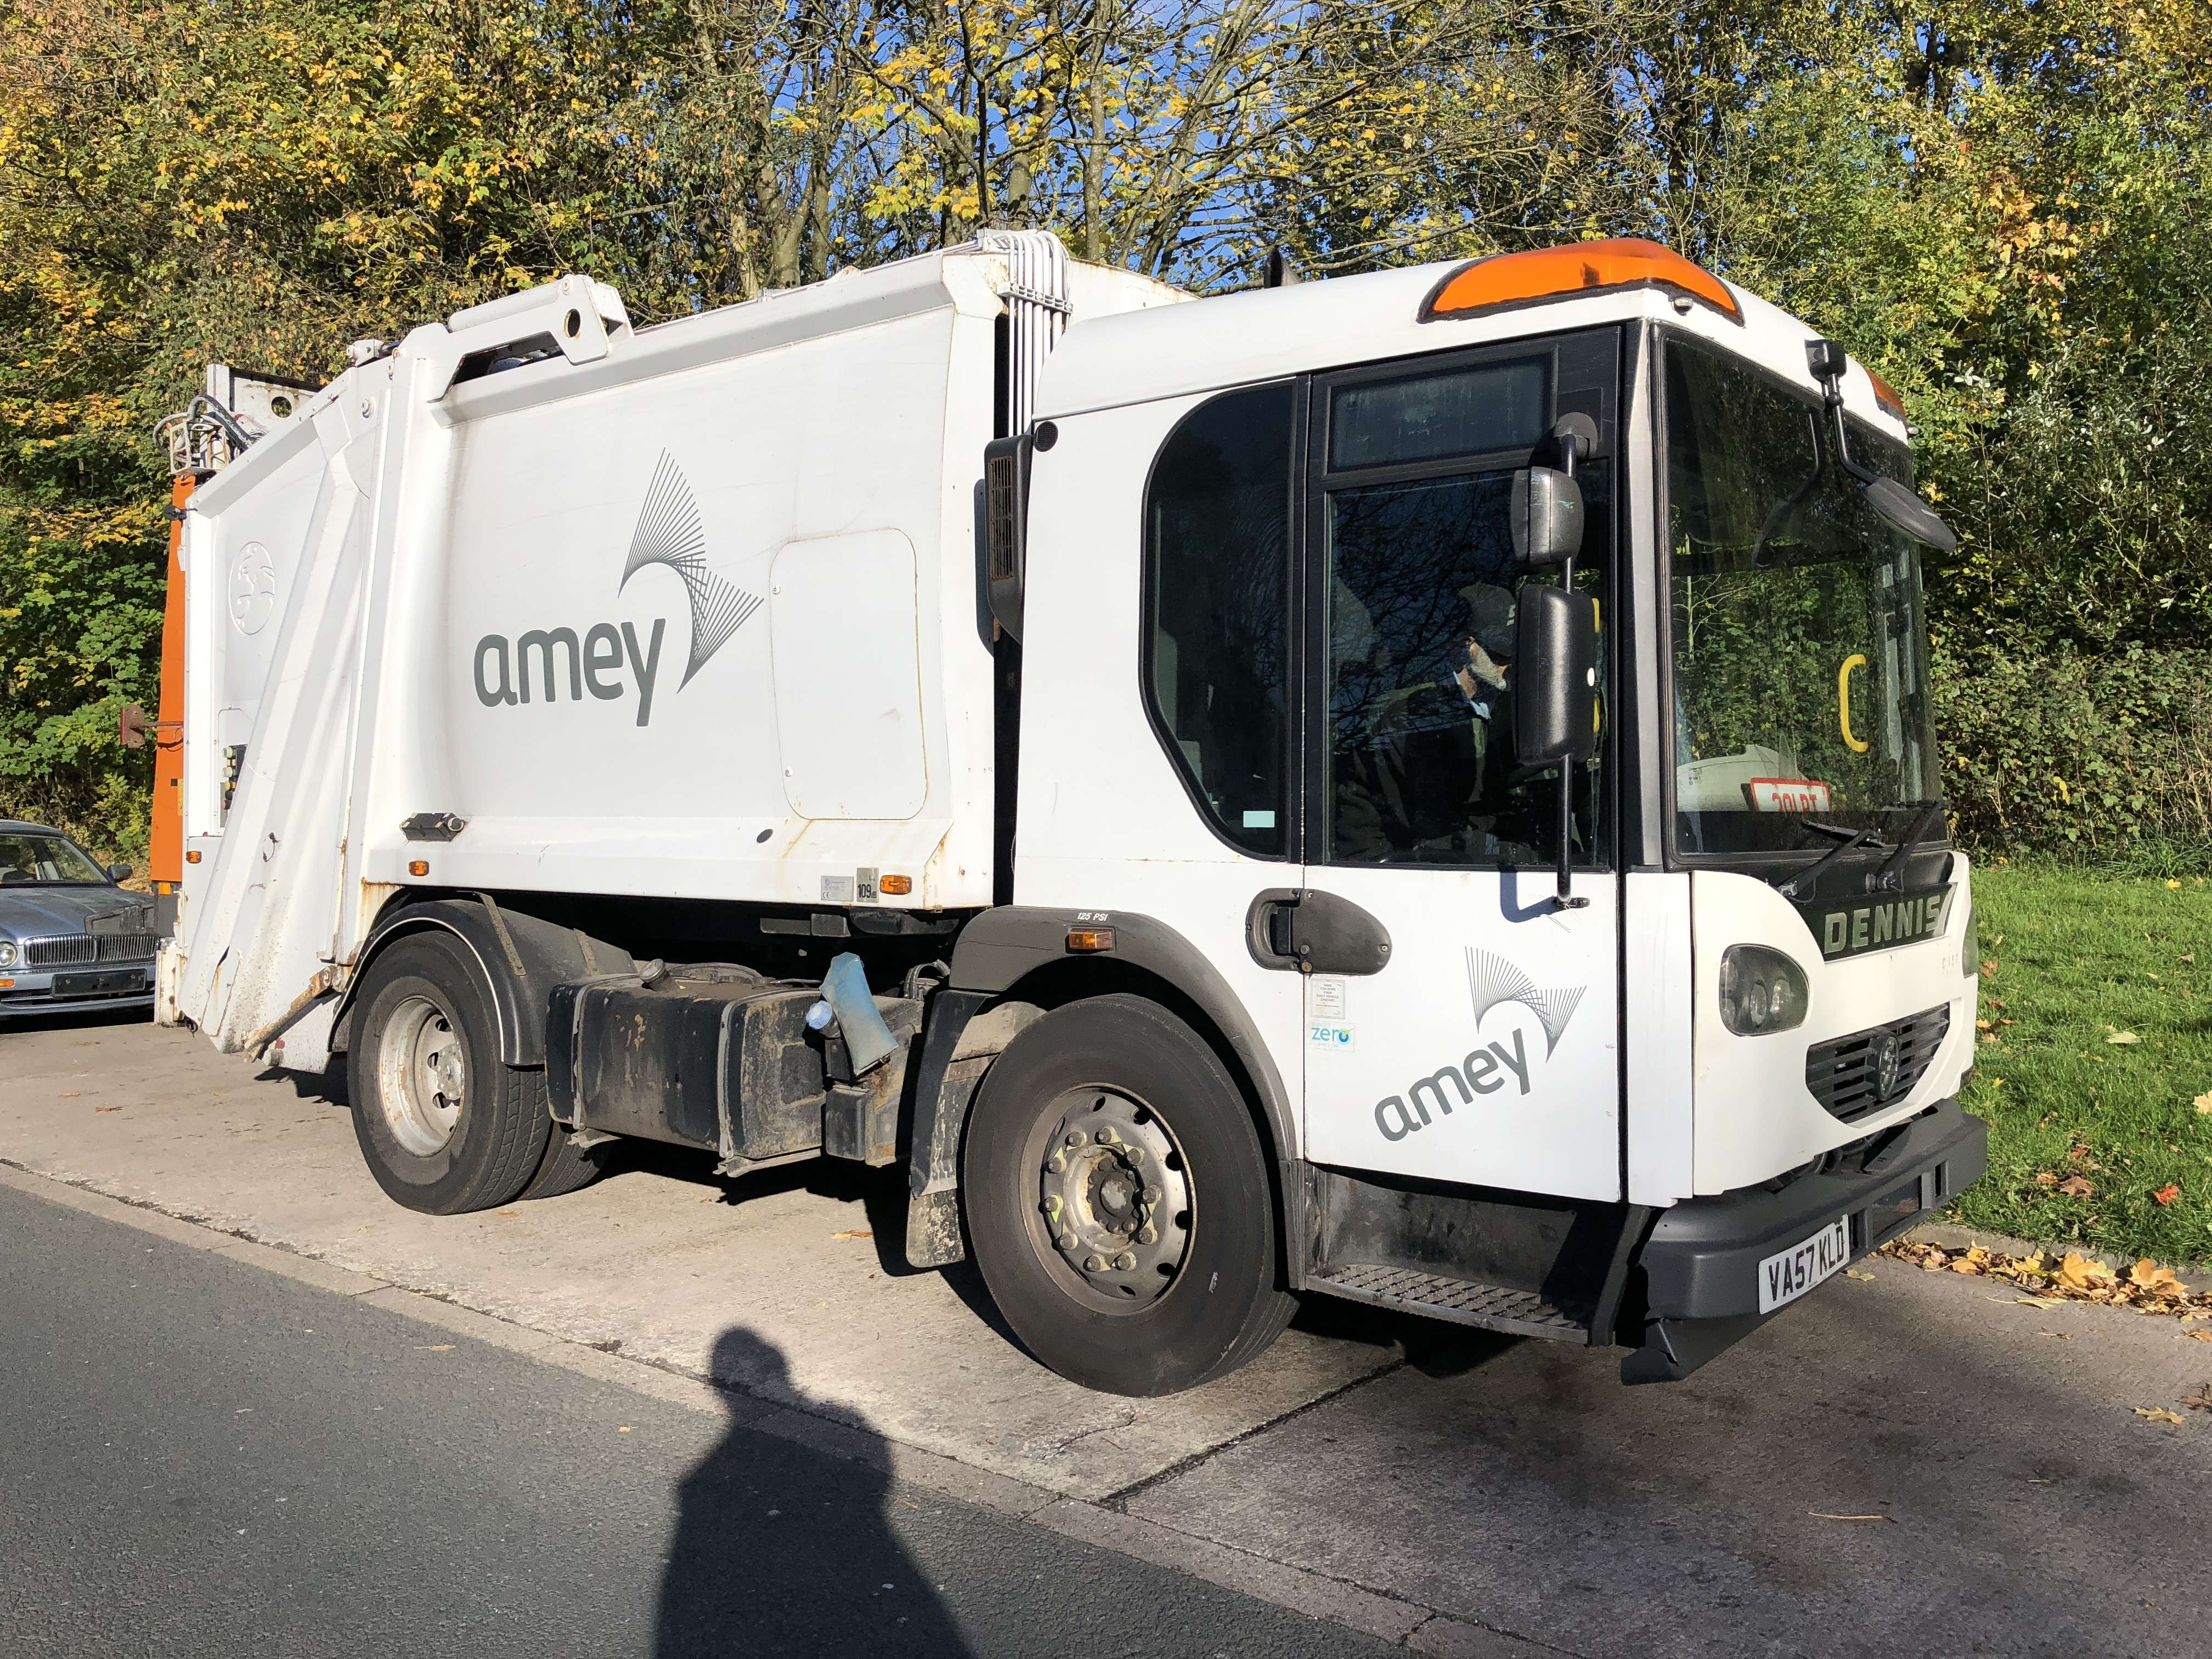 2008 Dennis 4x2 narrow track refuse collection truck for sale 2